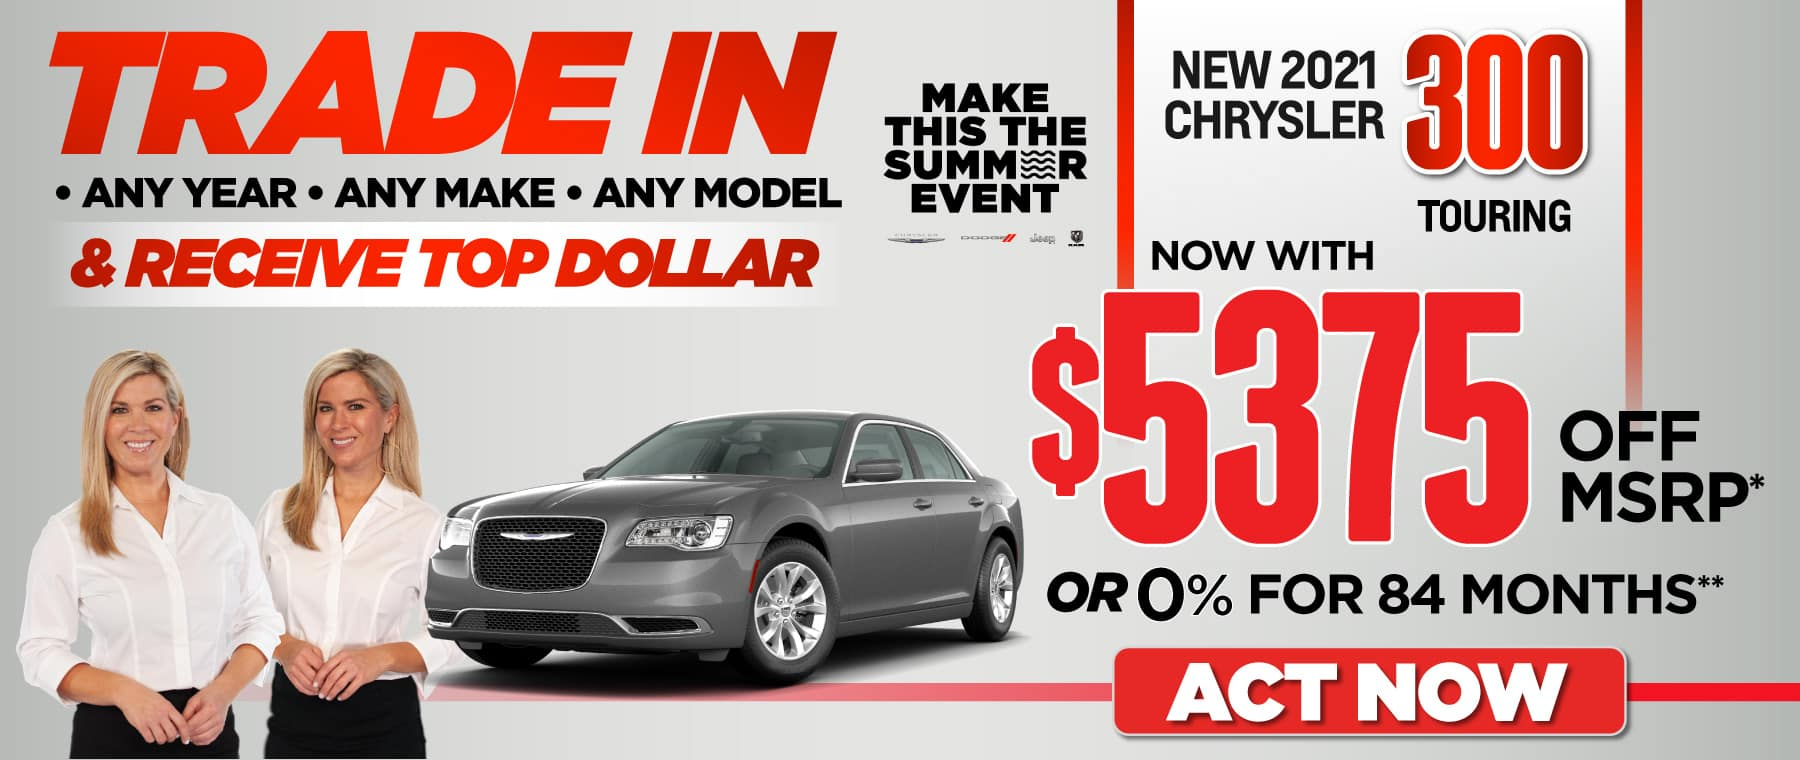 2021 Chrysler 300: over $5375 off msrp — ACT NOW